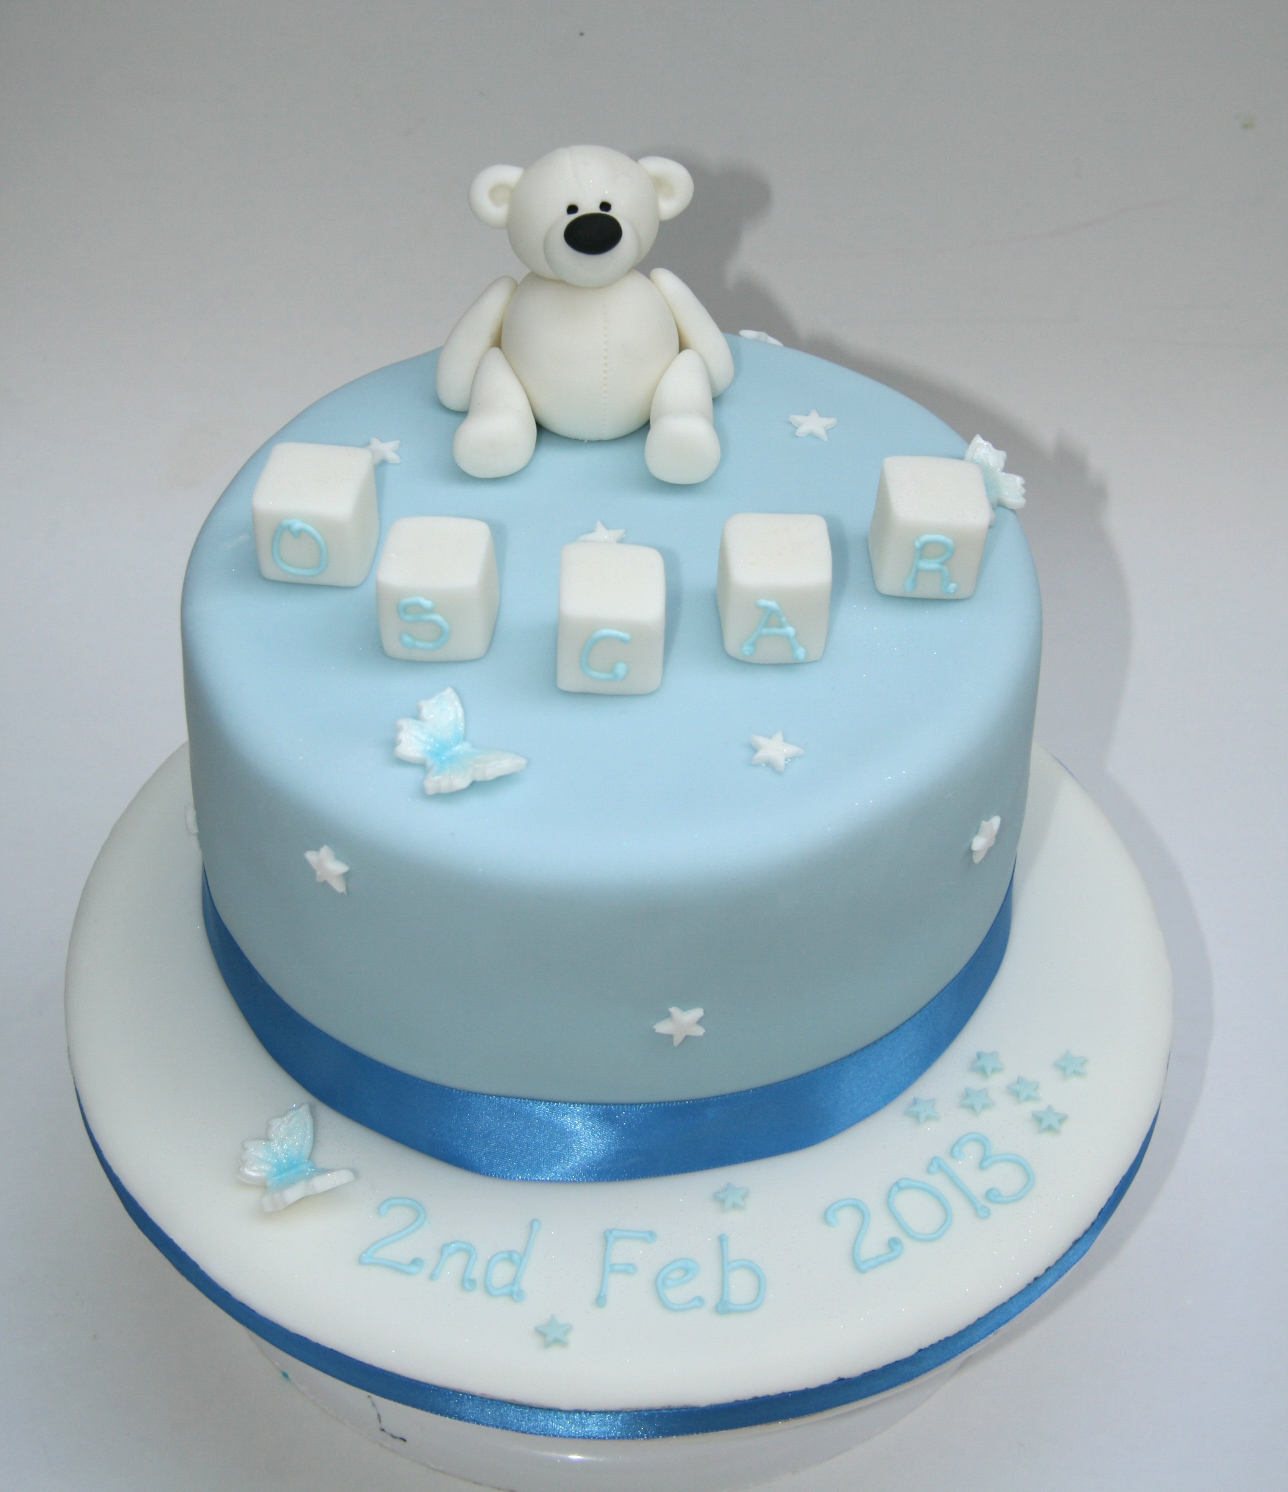 Julissamoreirafabiani wordpress as well Celebrity Twitter Pictures Week Of January 6 2012 moreover Fun With Frosting Friday Crazy Fondant Cakes furthermore Watch besides Baby Dragon 2. on oscar s birthday cake